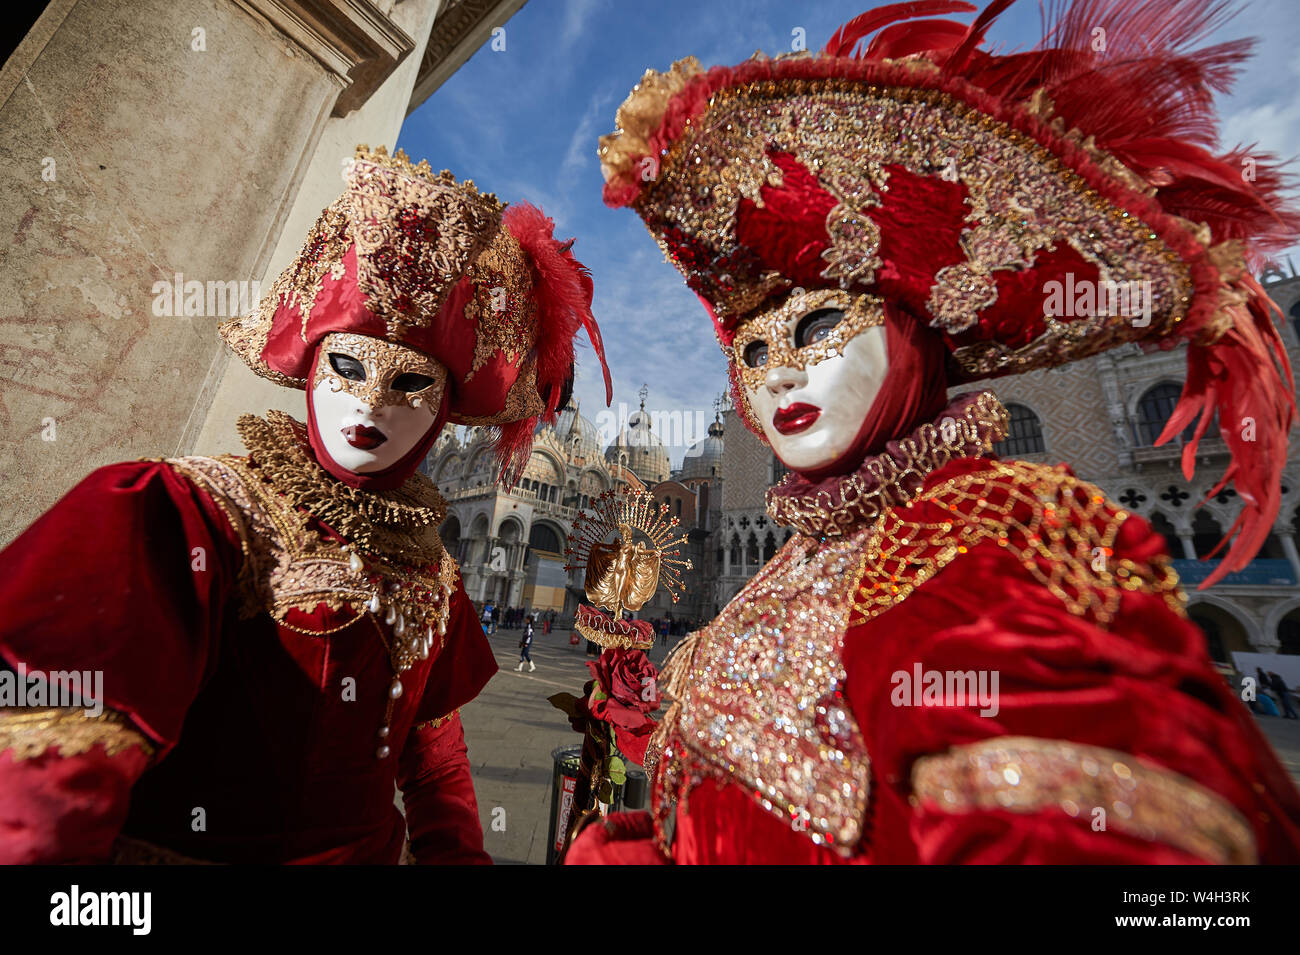 Venetian Masks in red costumes in Venice Italy Stock Photo